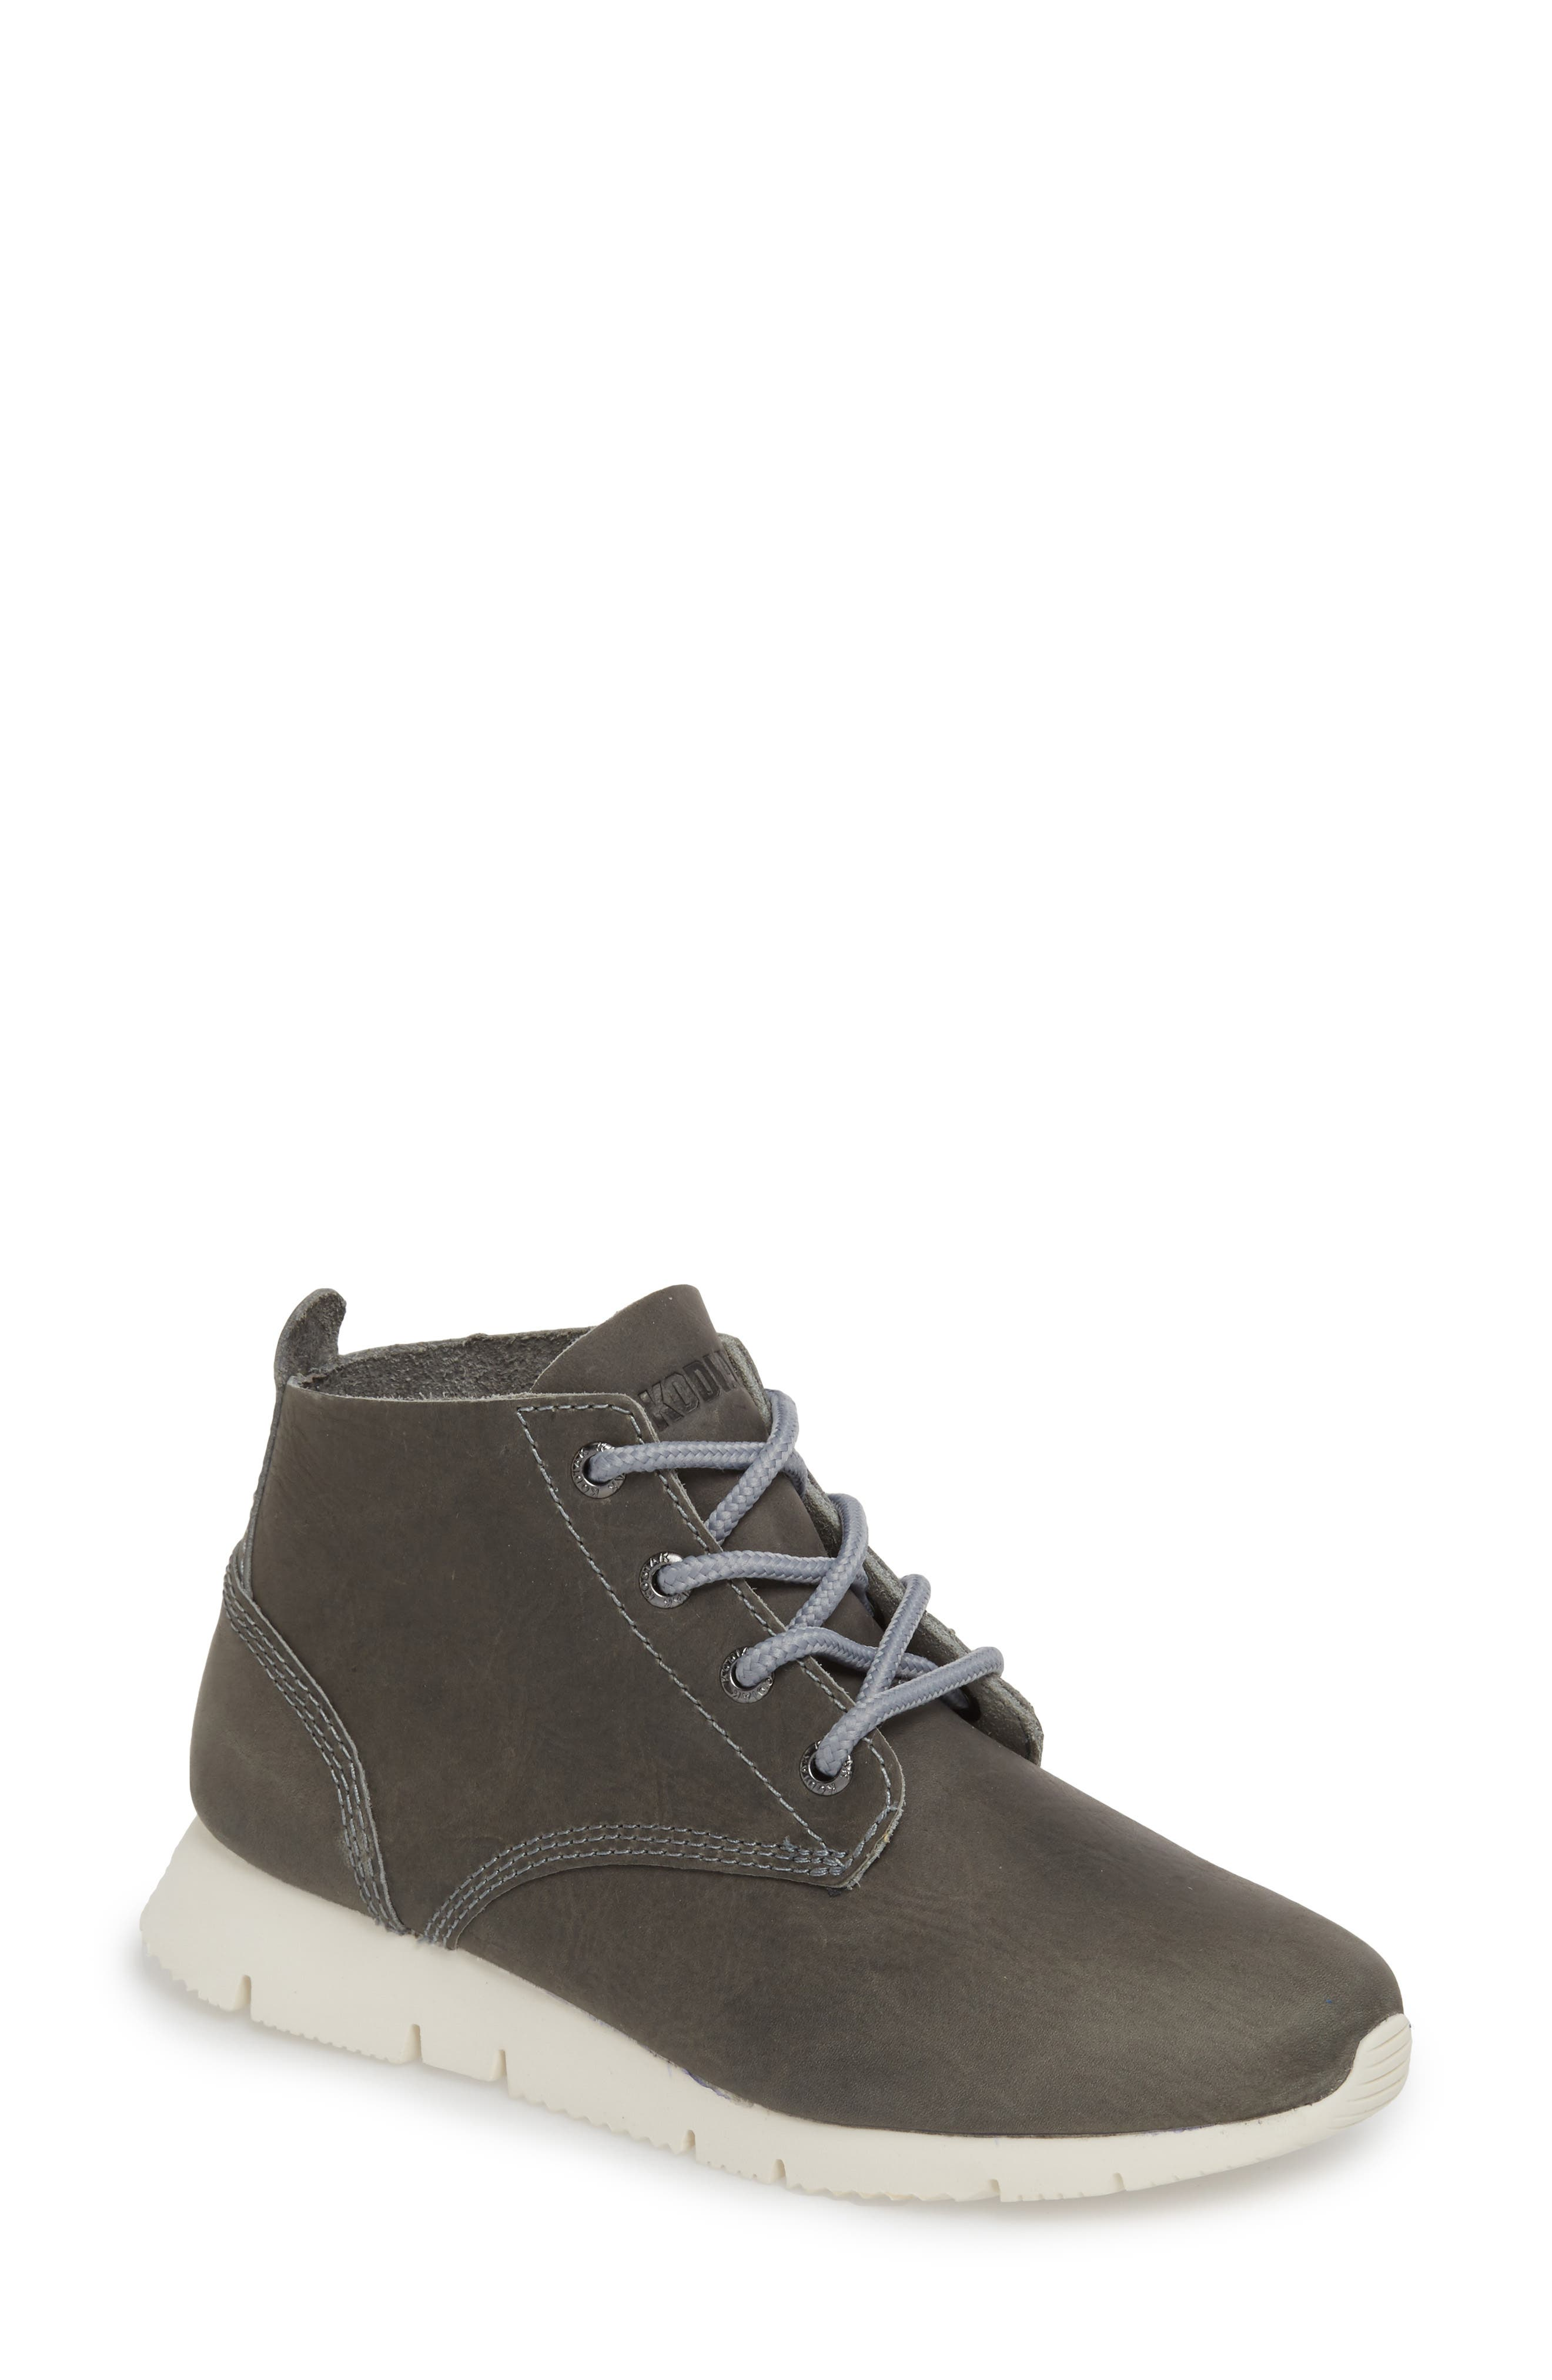 Chukka Boot,                         Main,                         color, GREY LEATHER